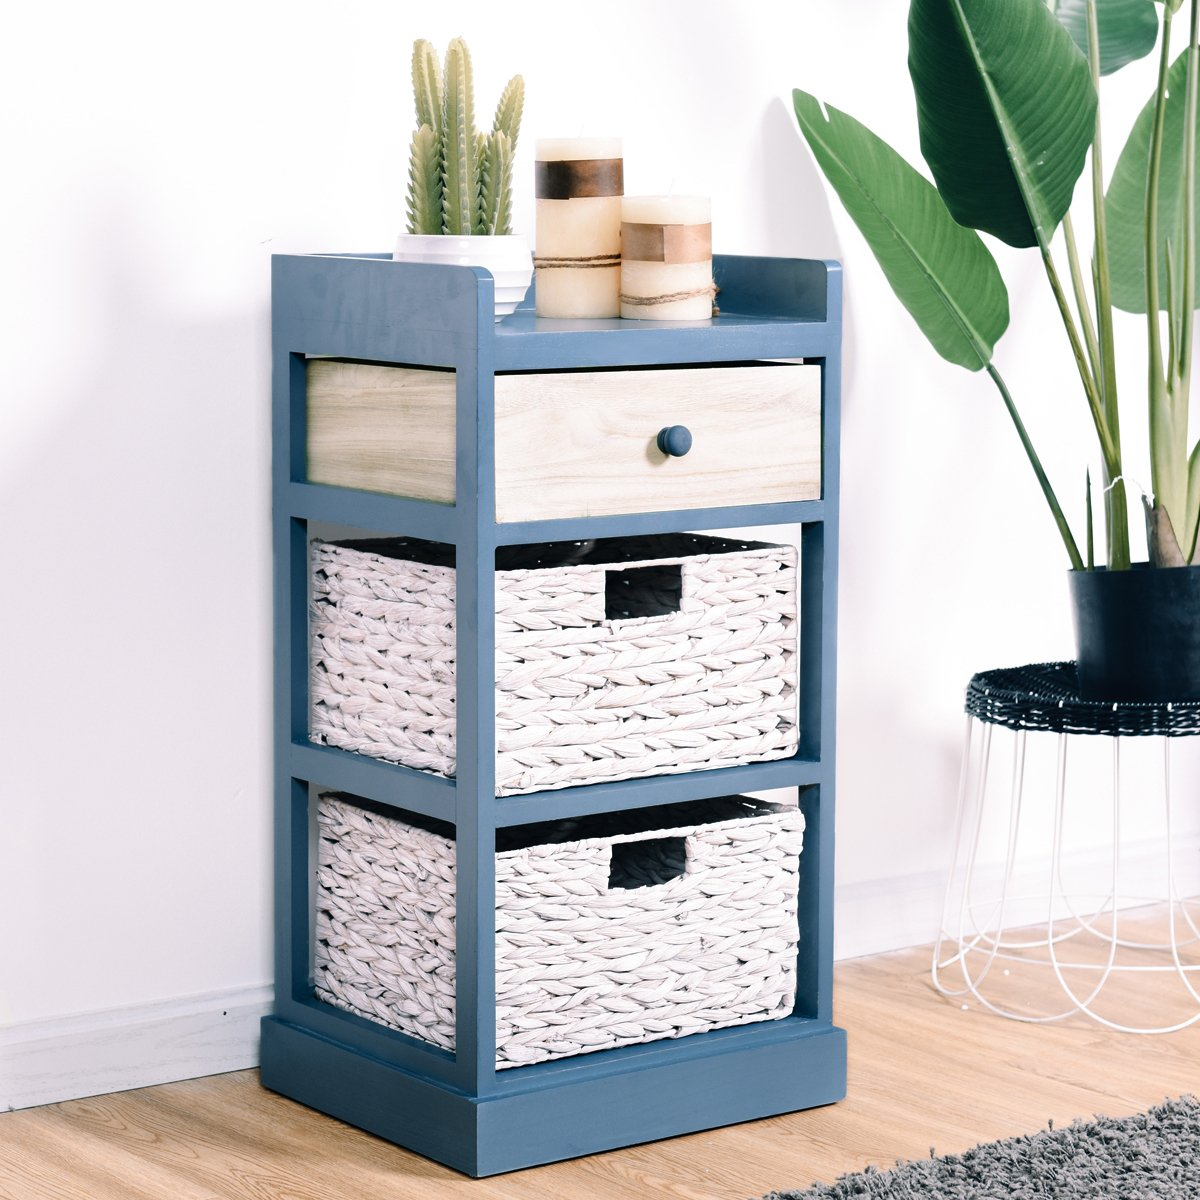 Giantex End Table w/Drawers and Baskets Beside Table Nightstand Wood Drawer Cabinet Home Office Collection Solid Wood Accent Storage Organizer (1 Drawer & 2 Baskets)